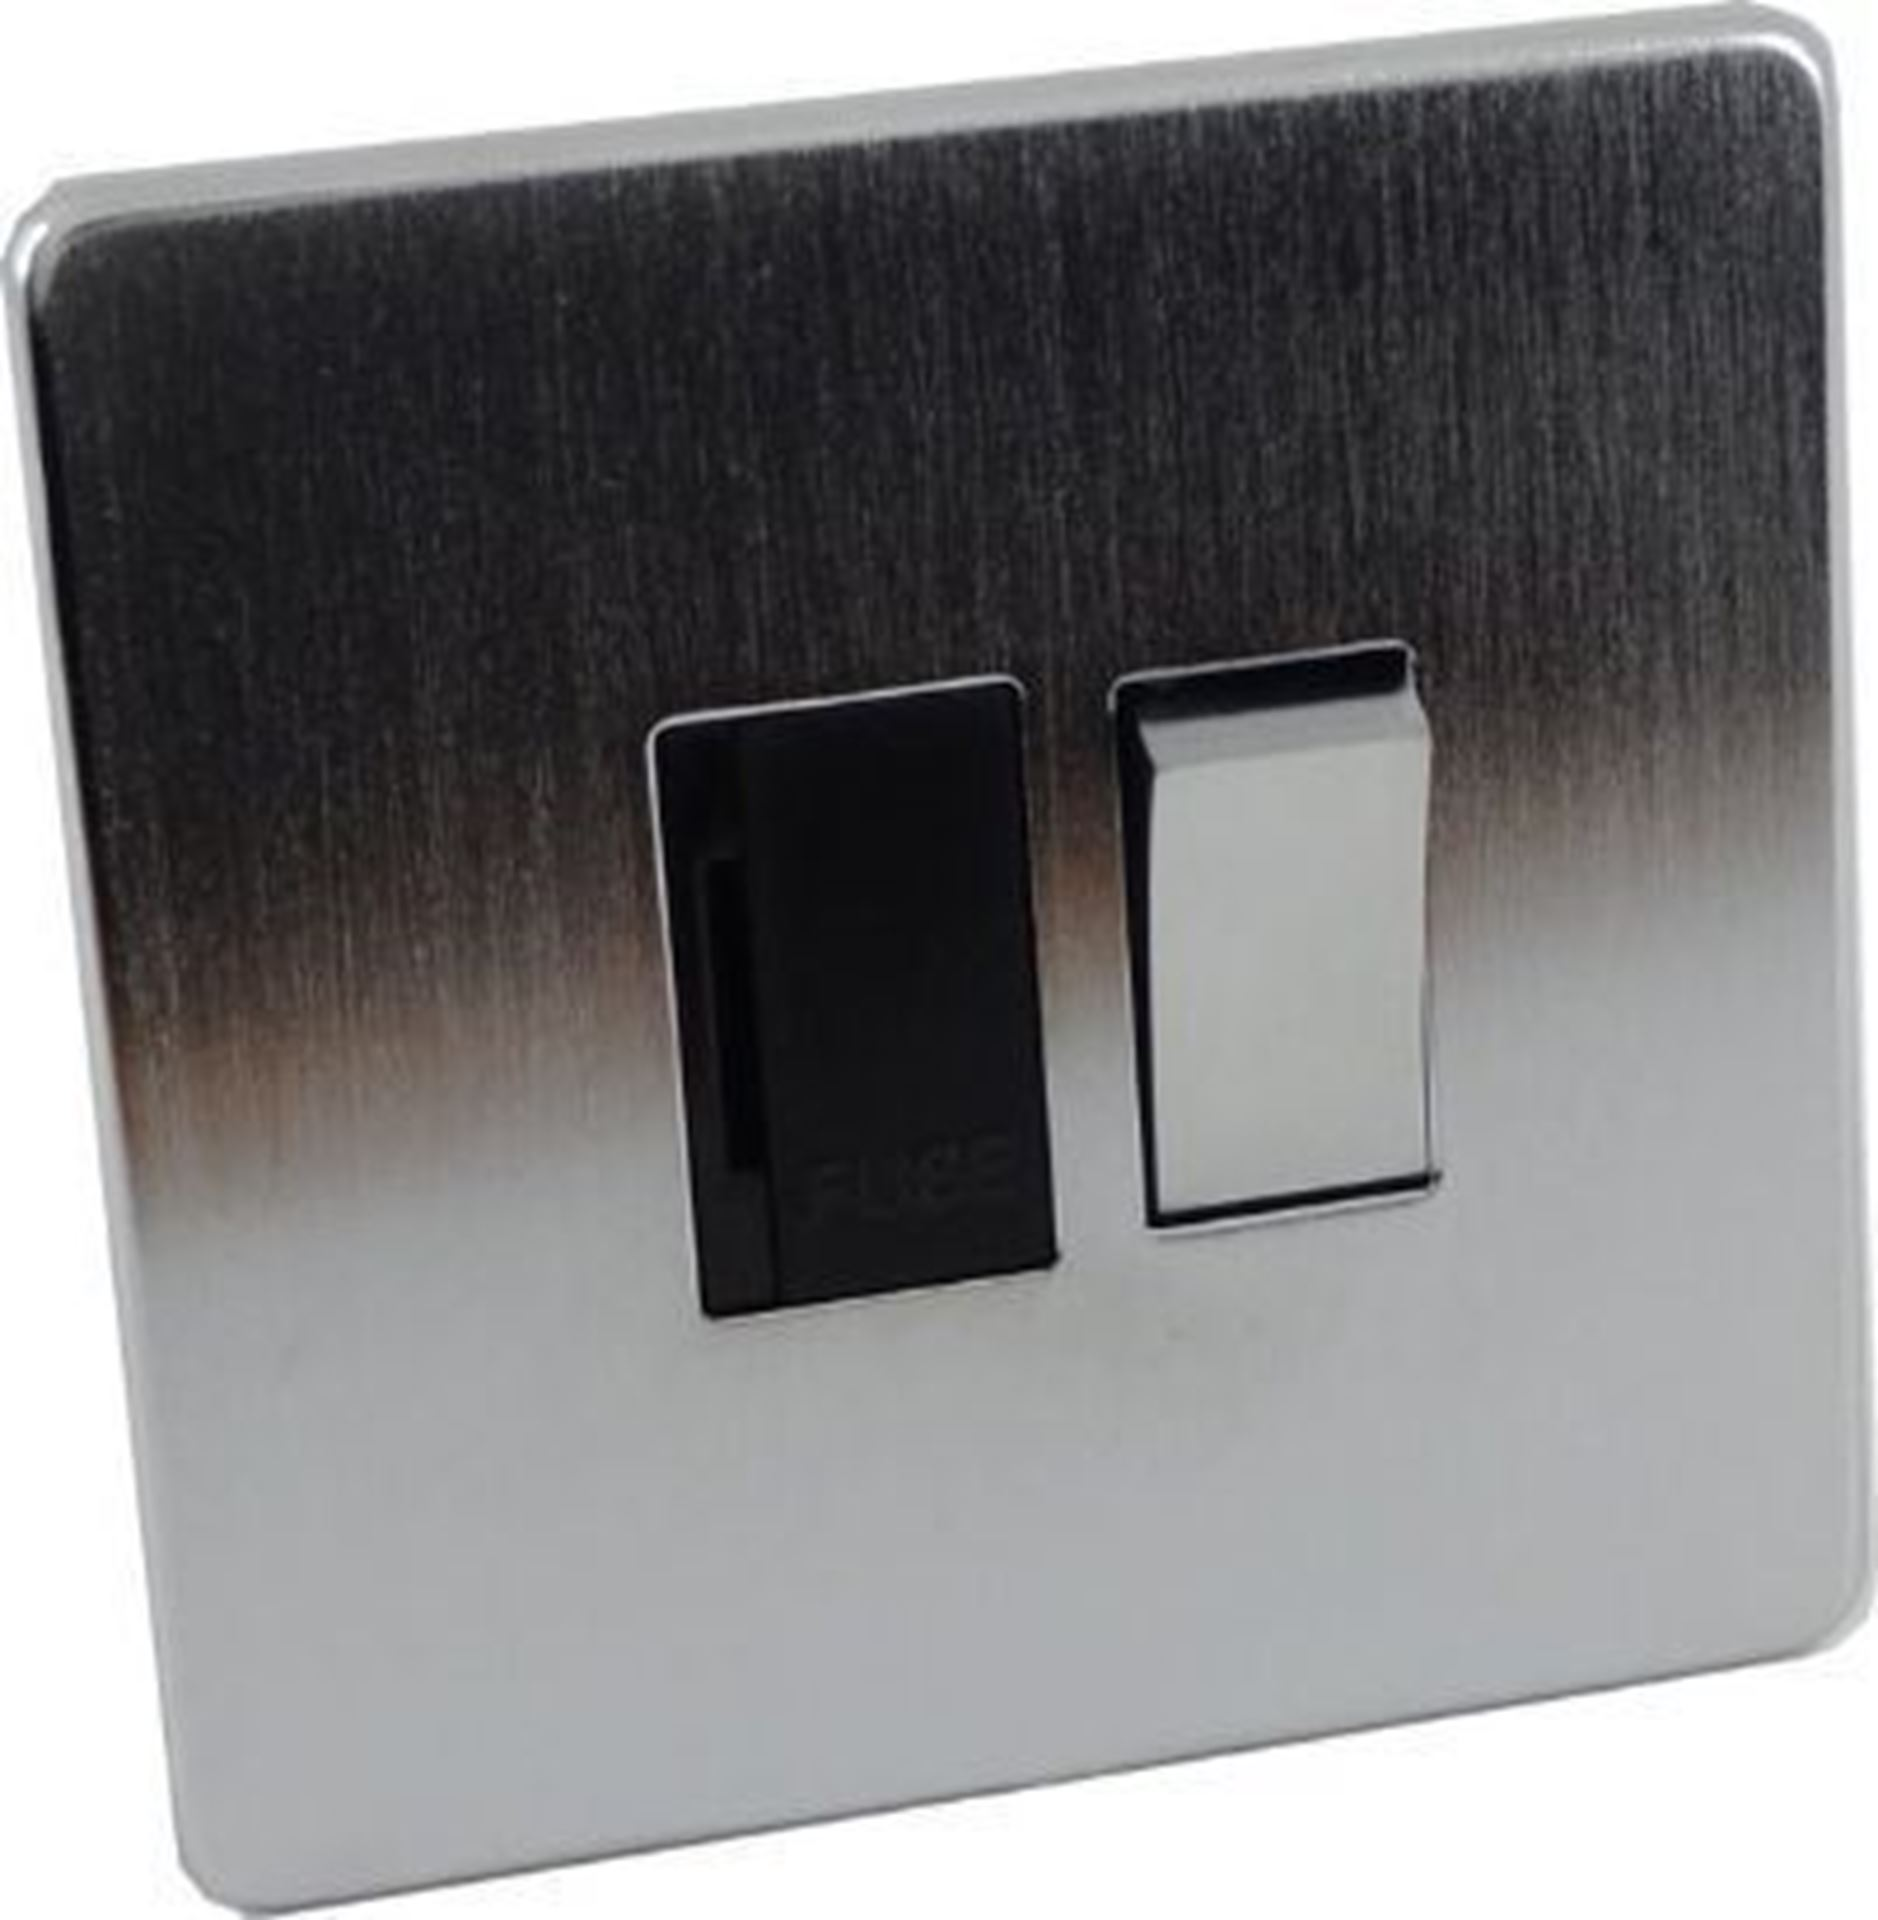 Crabtree Platinum Satin Chrome 13A Switched Fuse Spur 7832/SC